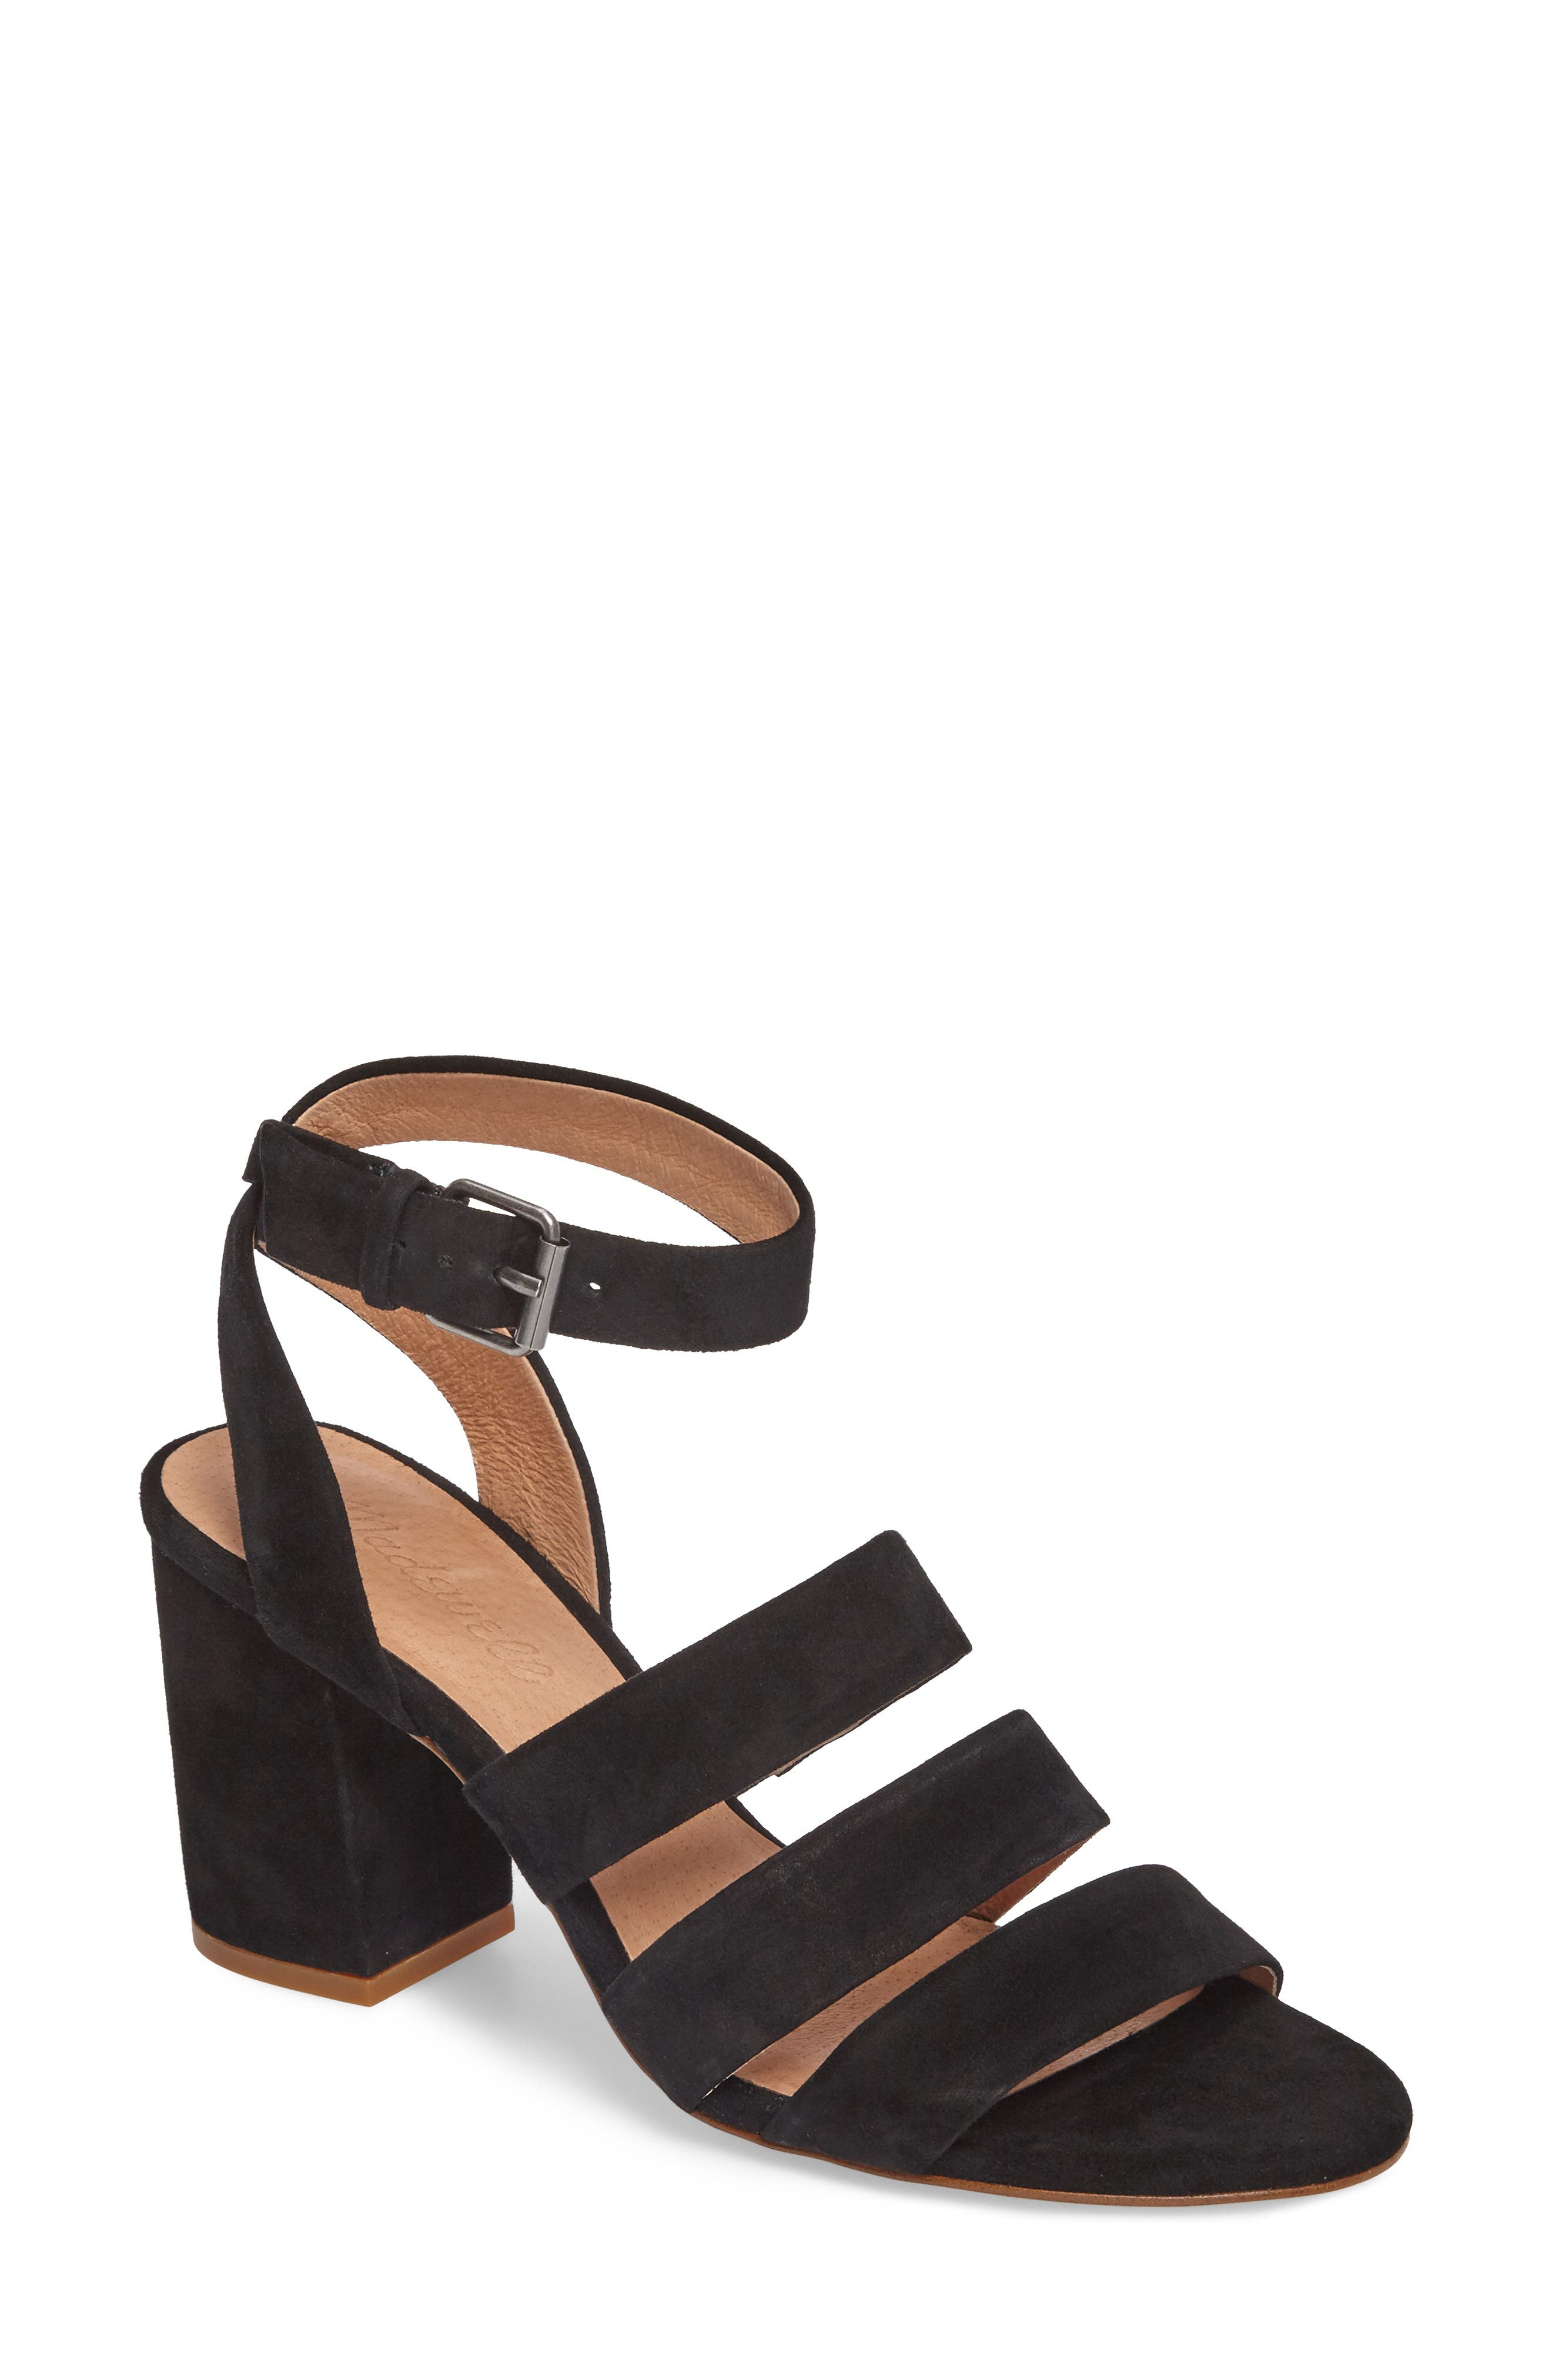 Maria Sandal,                         Main,                         color, 001